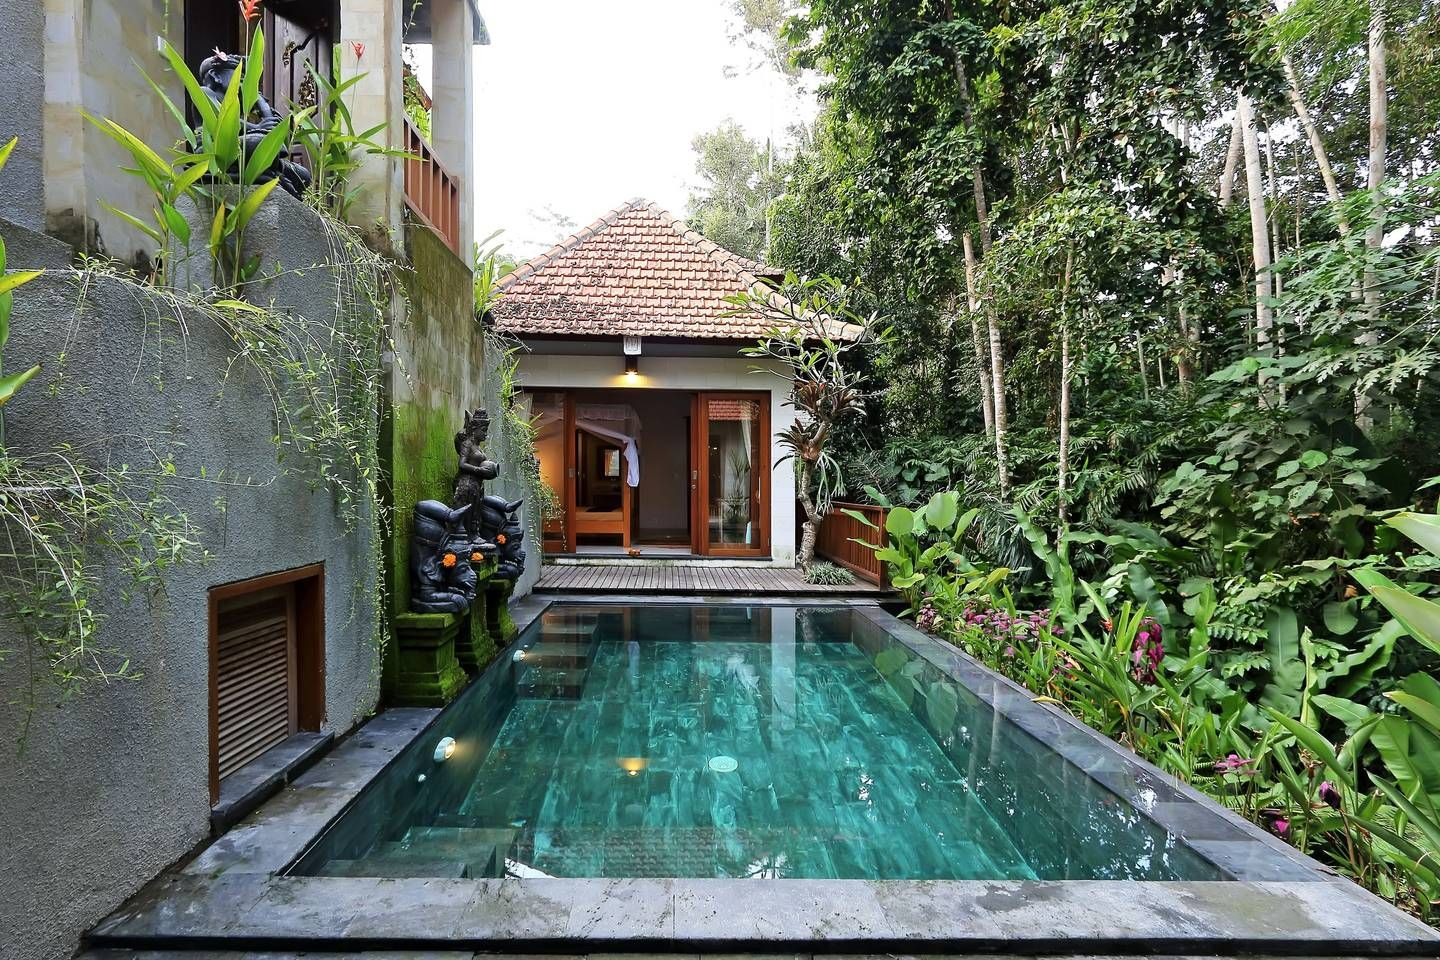 Amazing 1br Villa Pool Jungle View Villas For Rent In Ubud Bali Indonesia Backyard Pool Bali Luxury Villas Small Pools